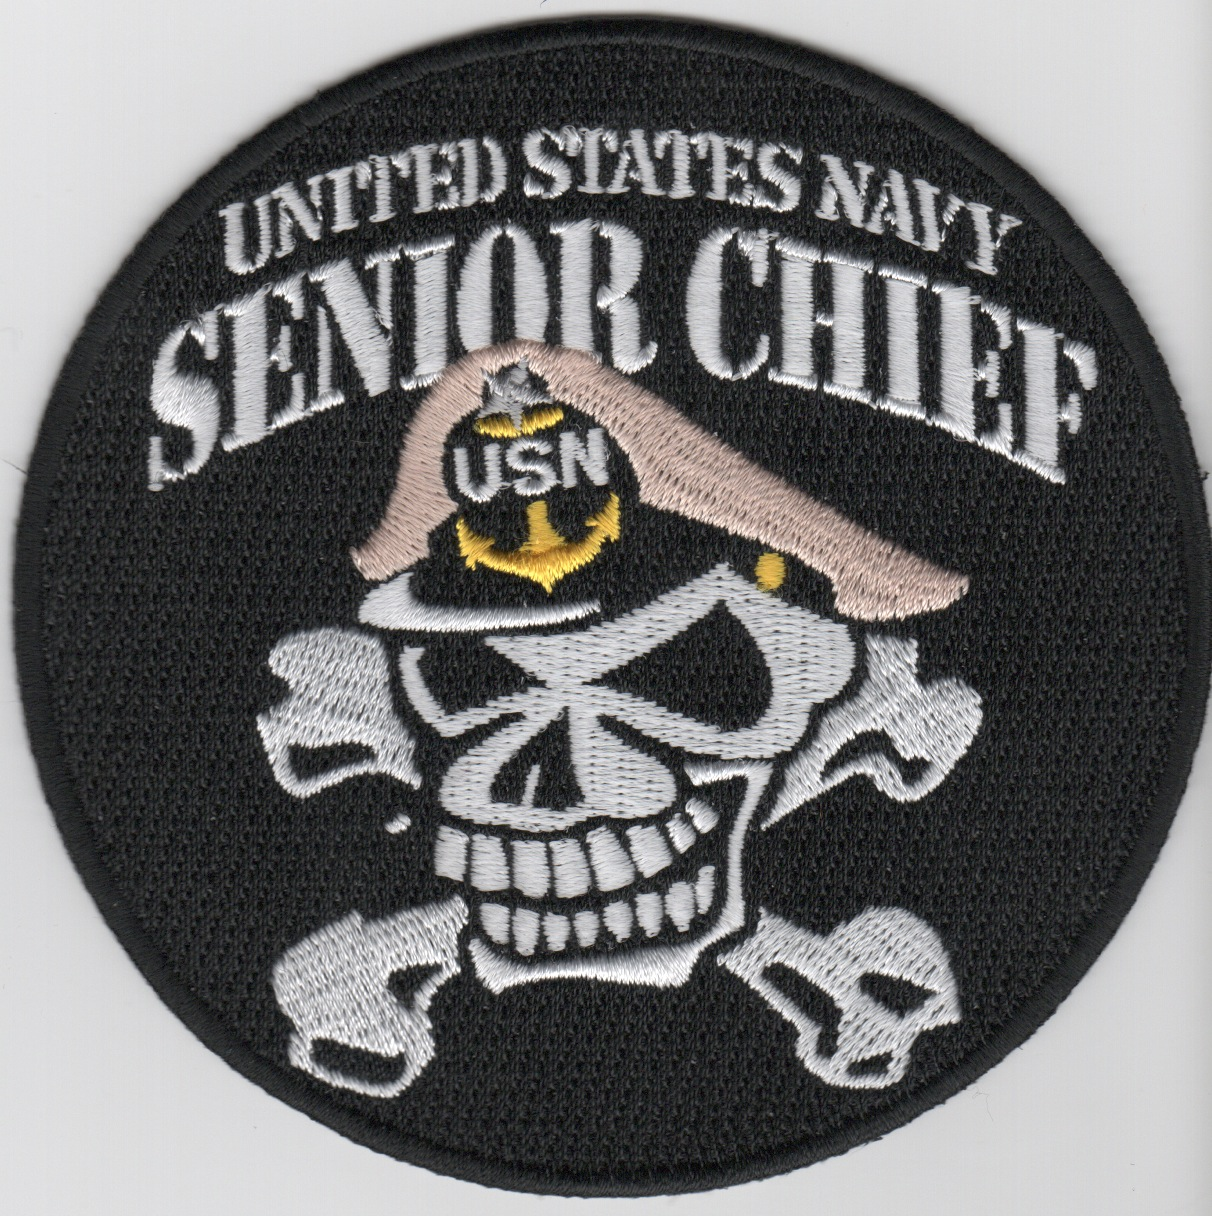 USN SENIOR Chief Patch (Skull/Round/Black)